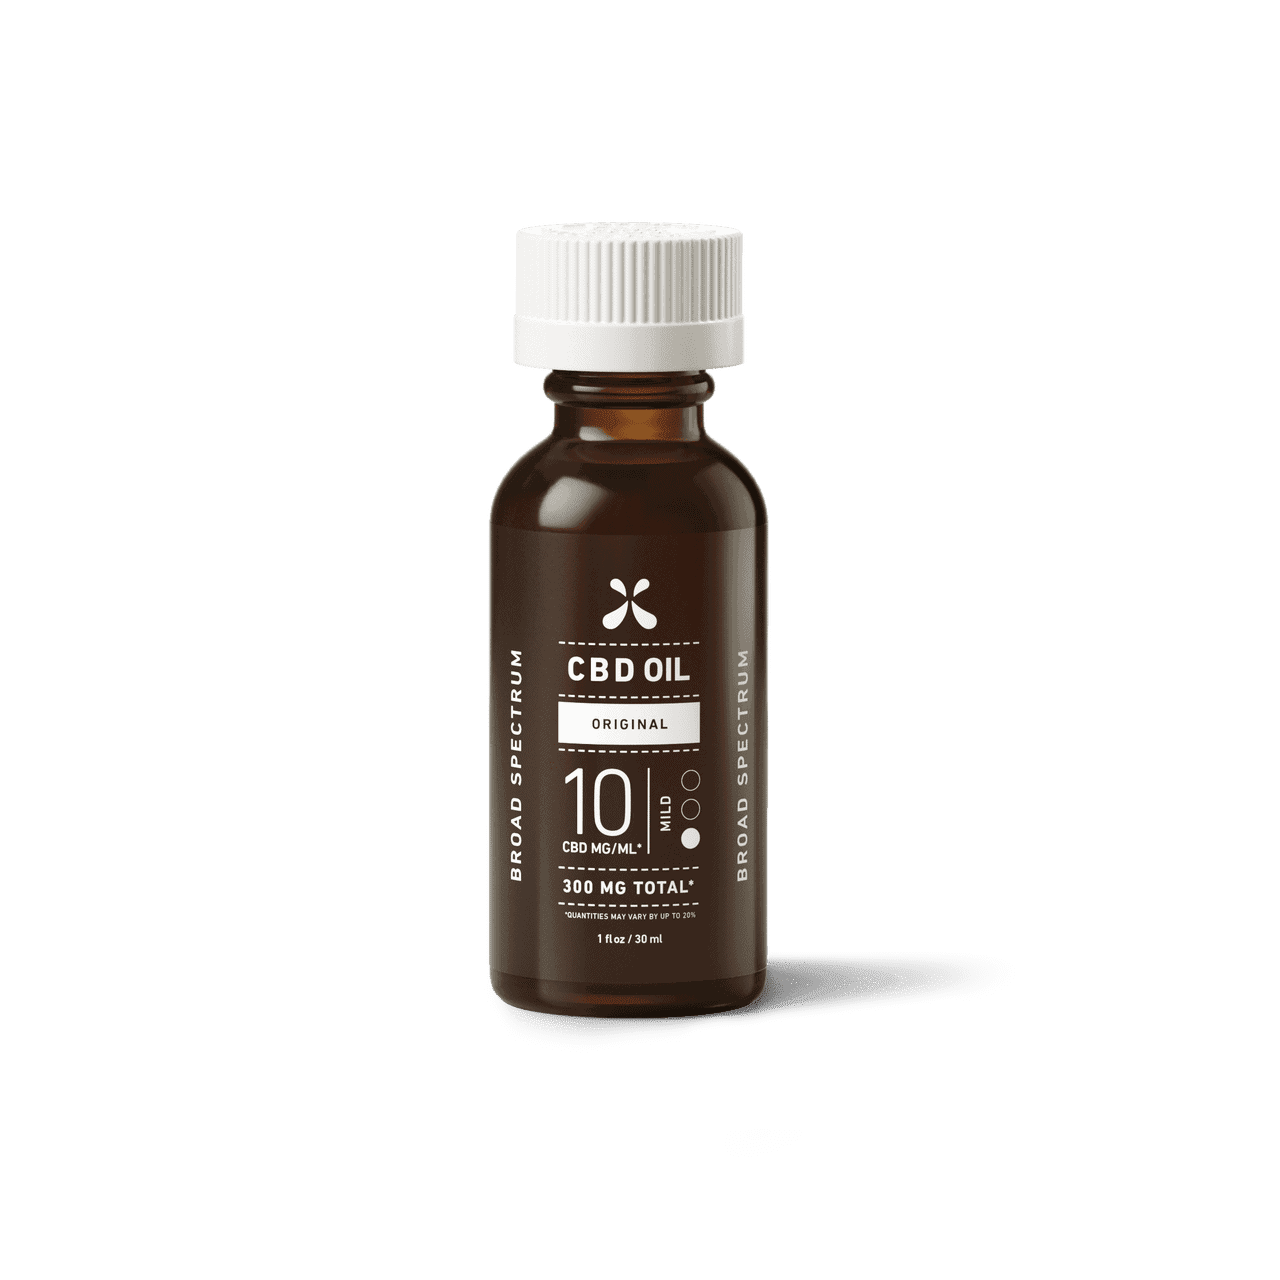 2.Broad-Spectrum-cbd-oil-Original-10mg.png